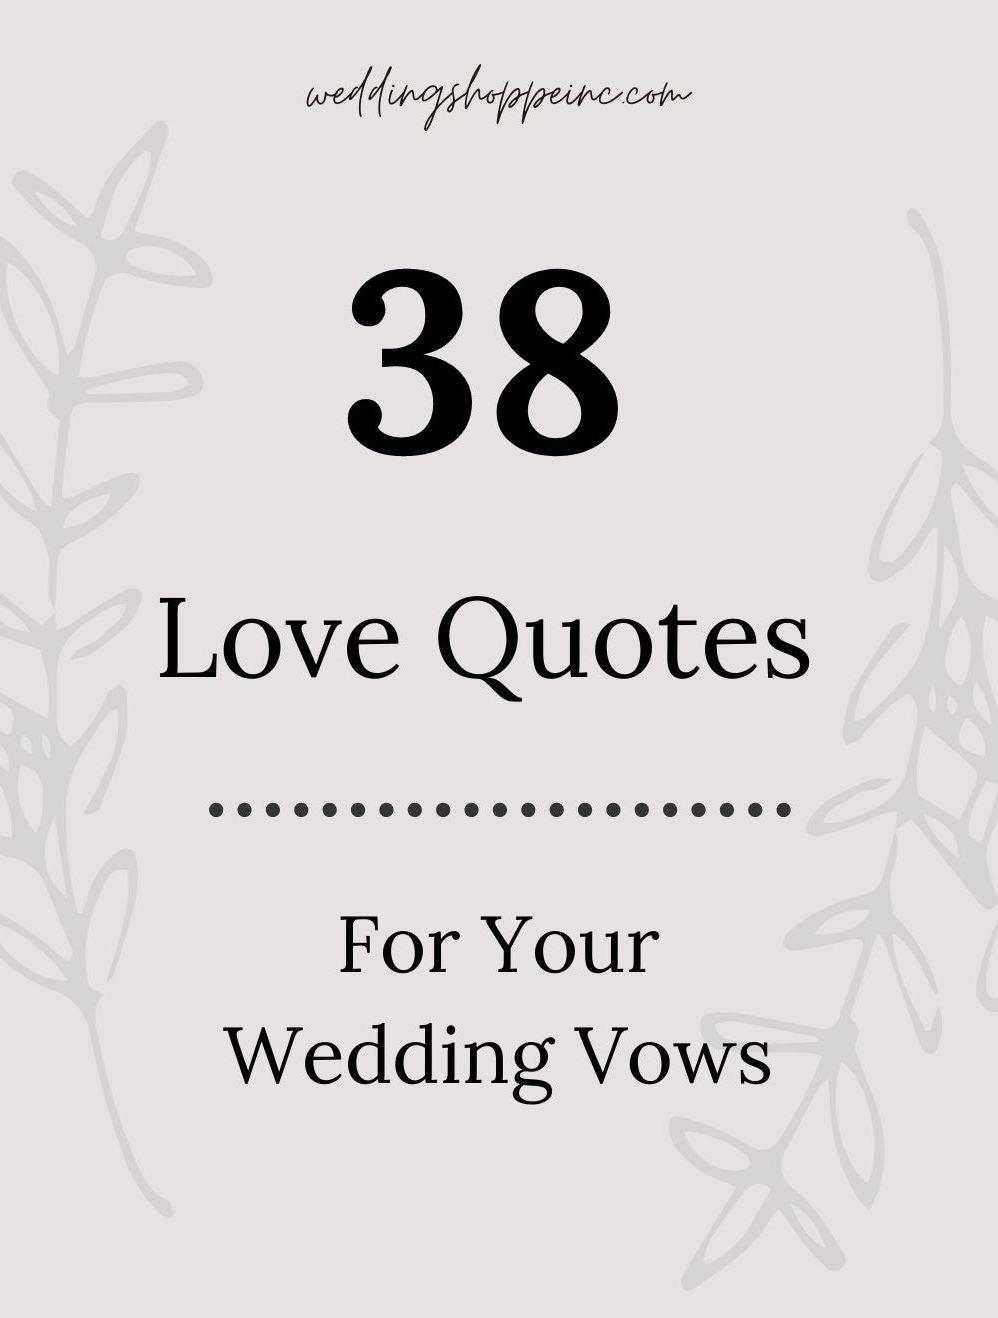 38 Love Quotes For Your Wedding Vows Wedding Shoppe